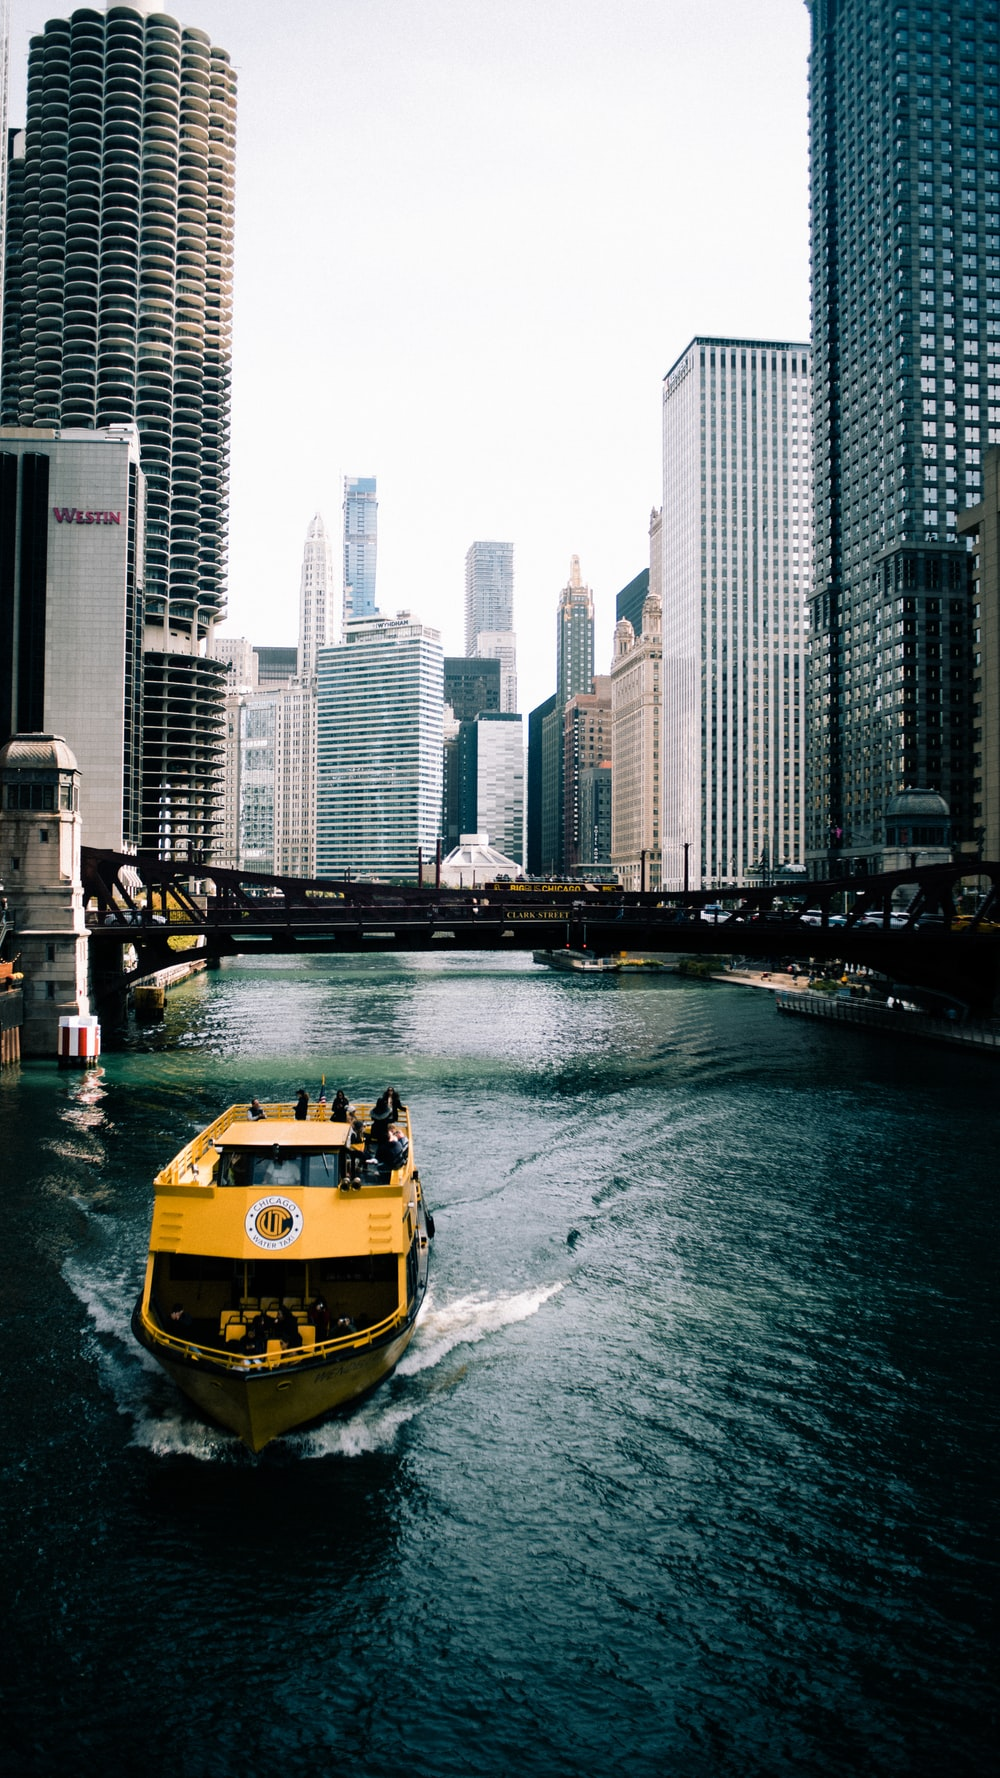 yellow and black boat on water near high rise buildings during daytime